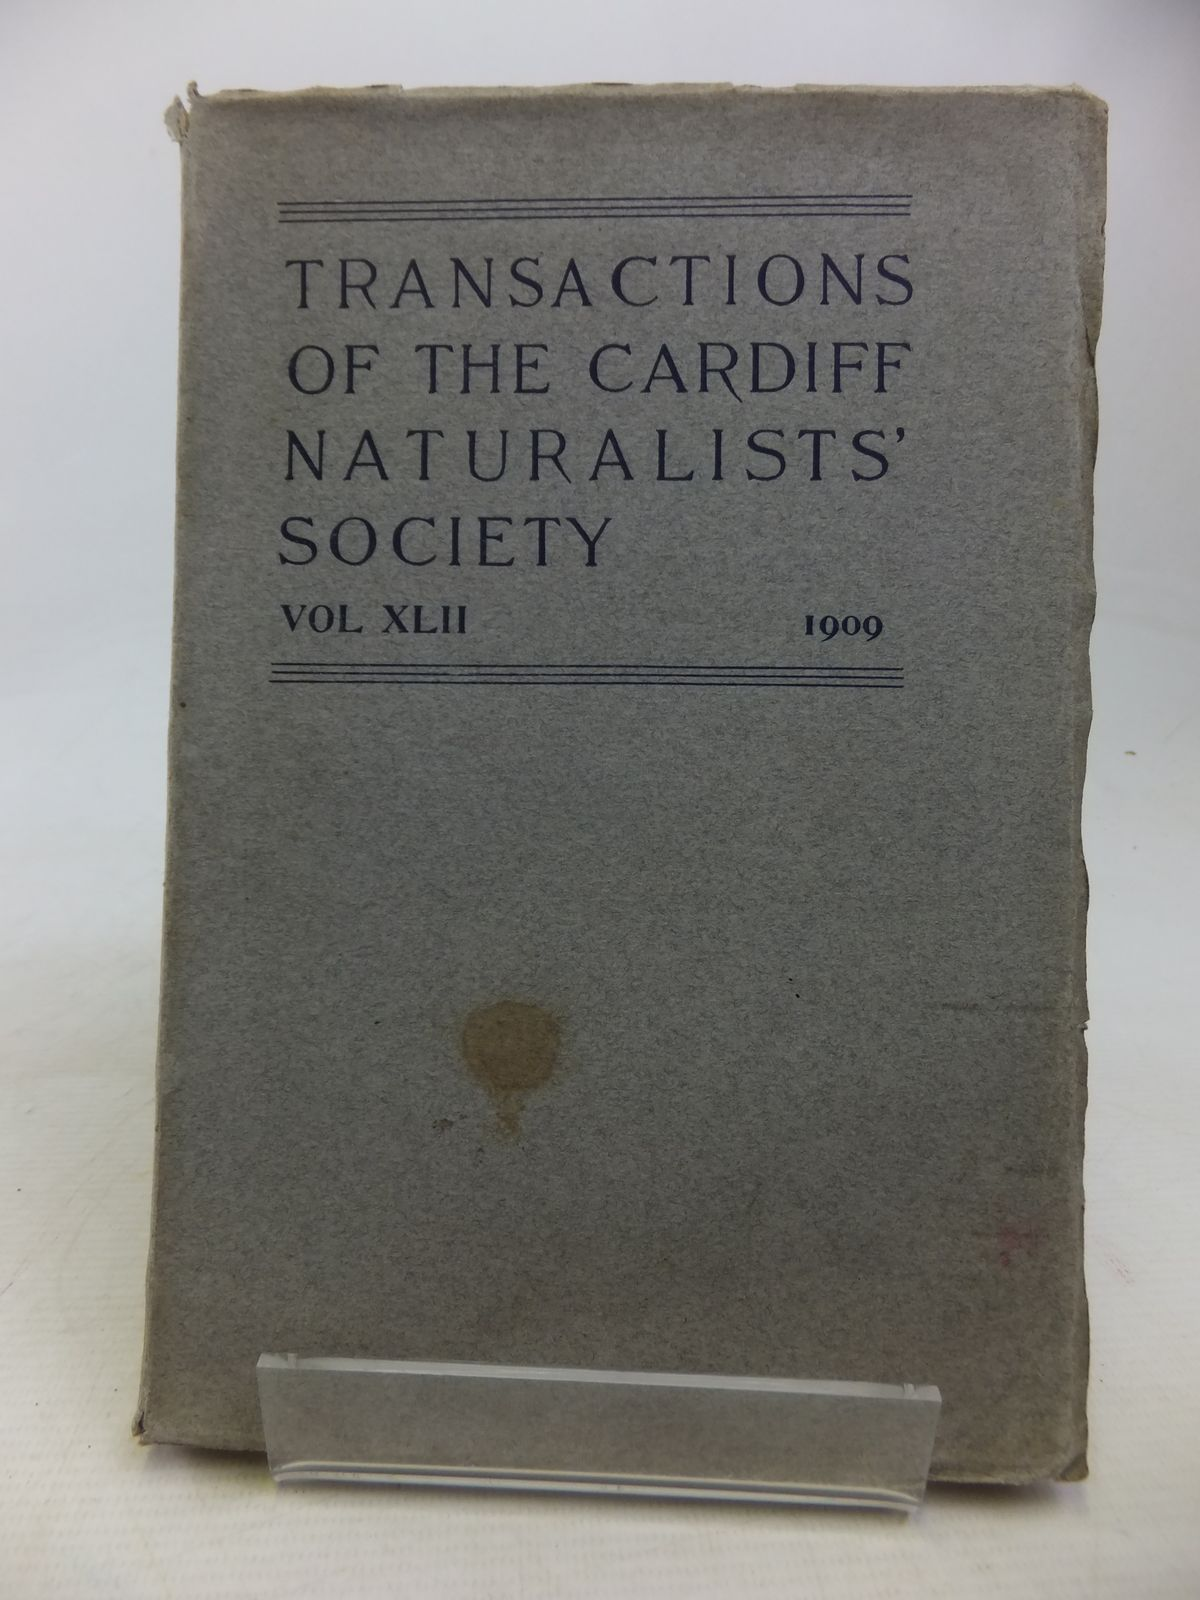 Photo of CARDIFF NATURALISTS' SOCIETY REPORT AND TRANSACTIONS VOL XLII 1909 published by The Cardiff Naturalists Society (STOCK CODE: 1809837)  for sale by Stella & Rose's Books